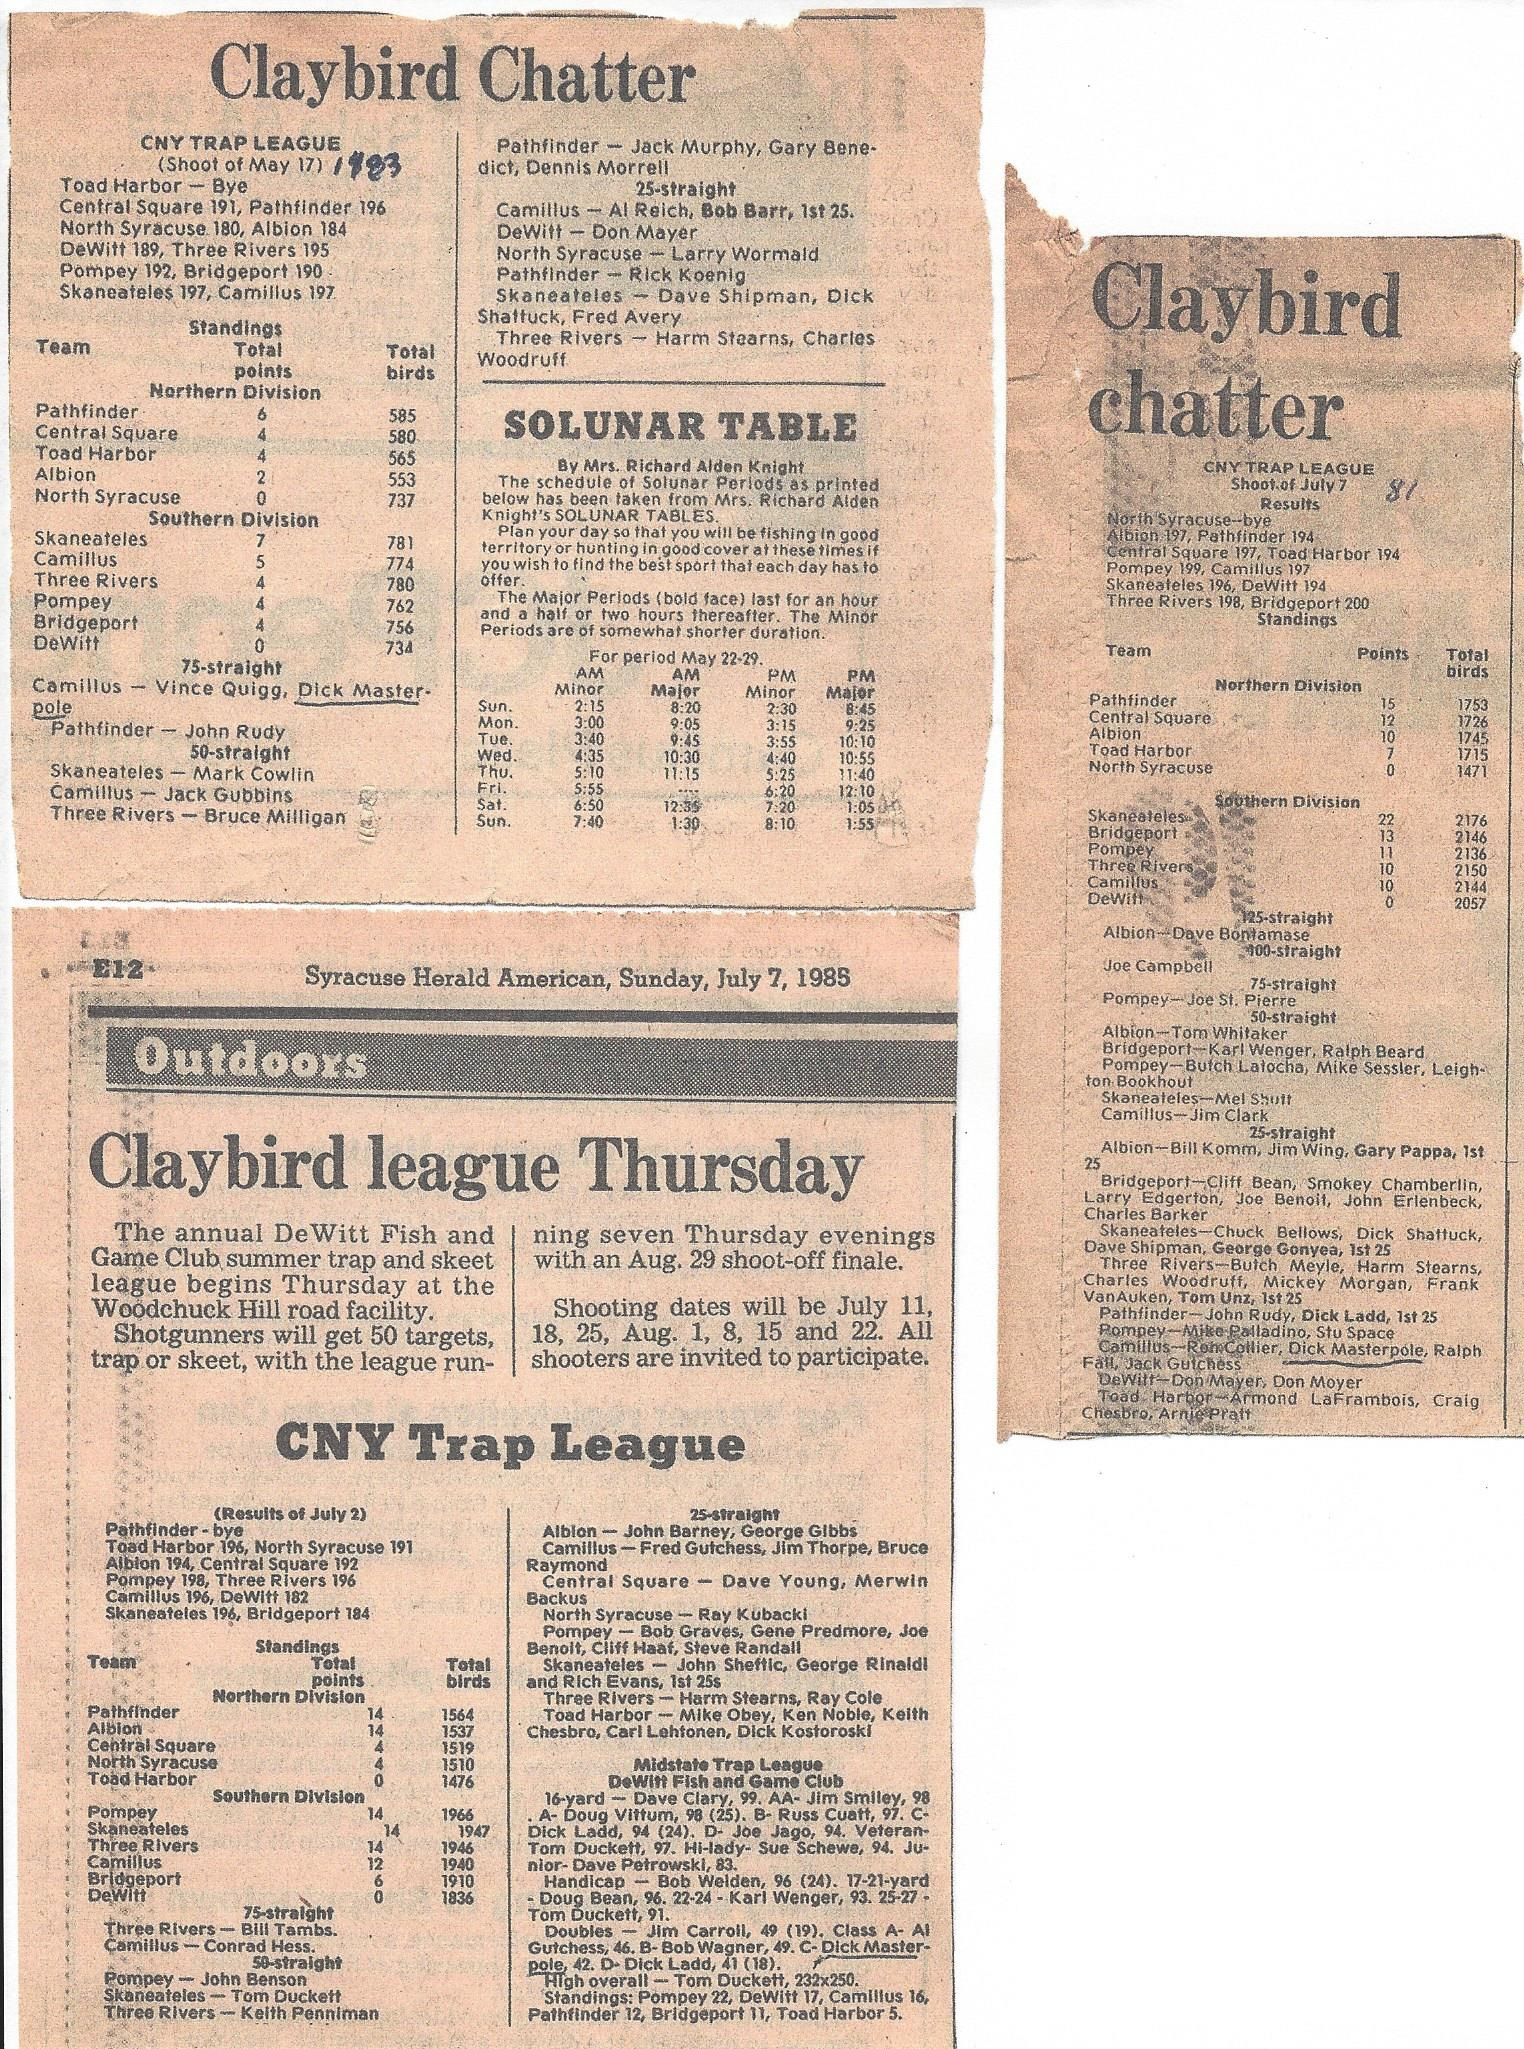 1980s claybird chatter